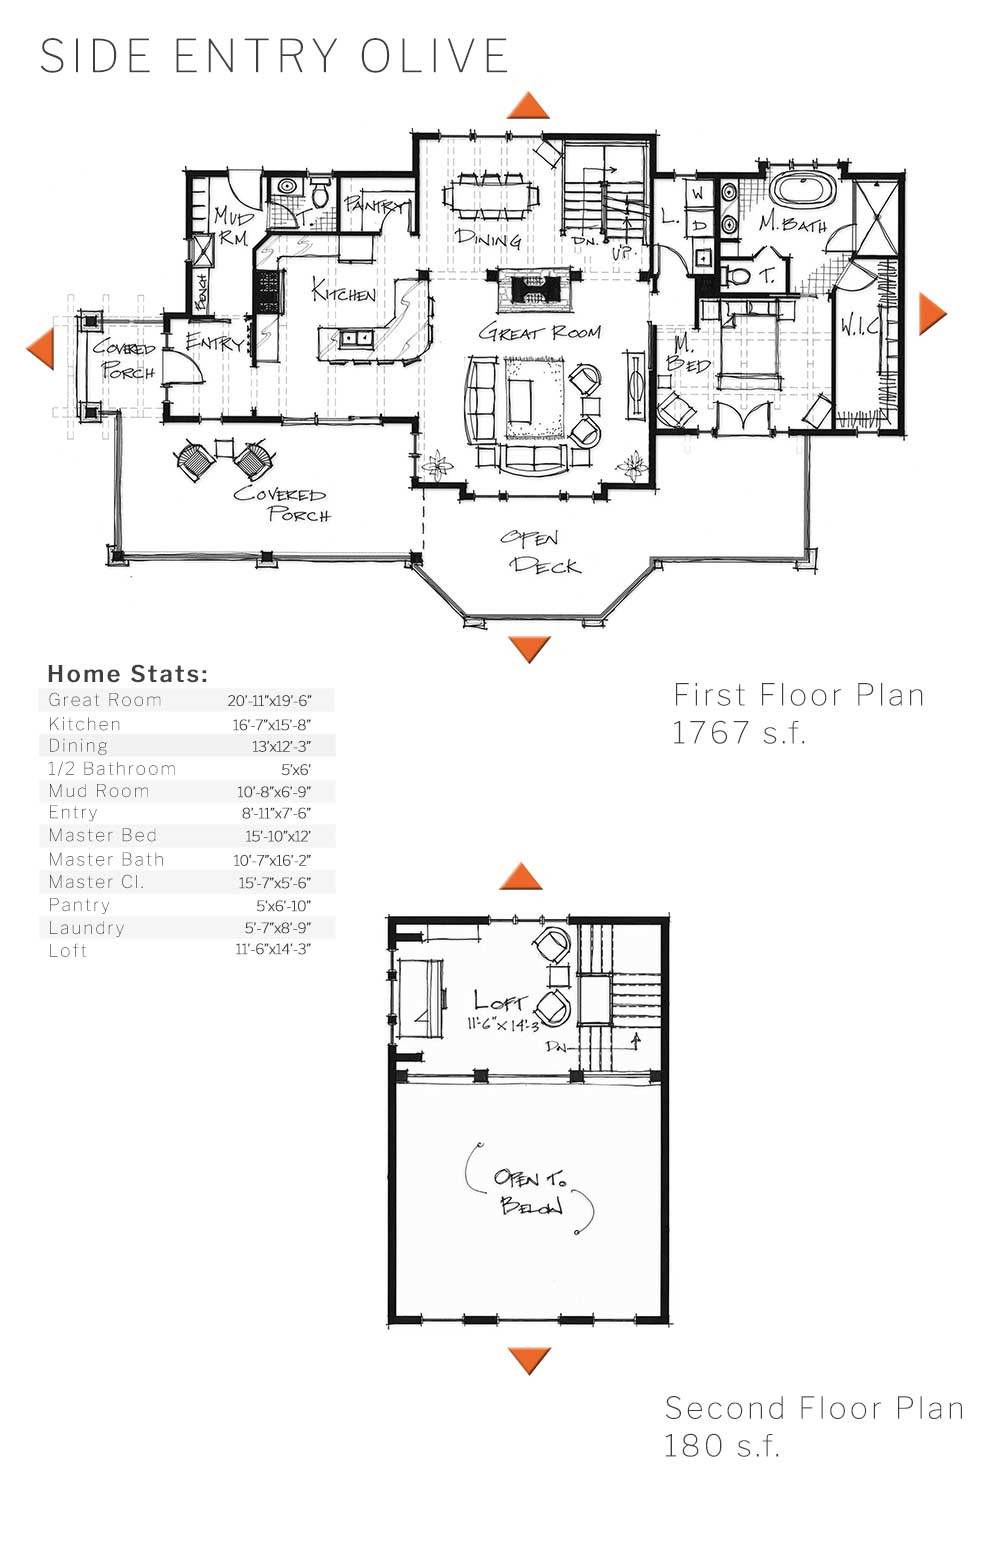 timber frame floor plan side olive